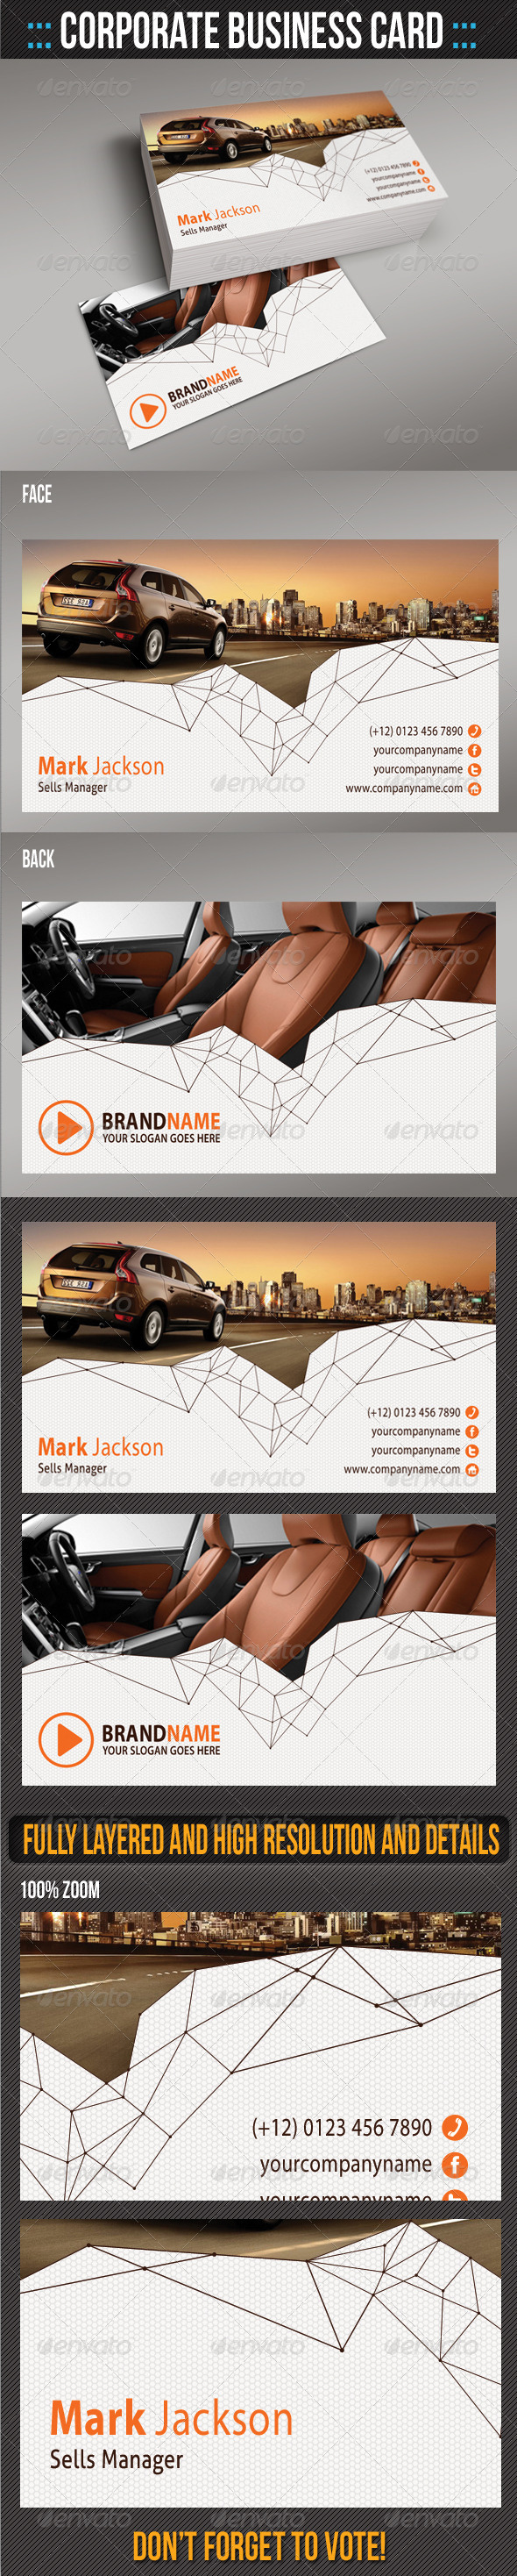 Corporate Business Card 06 - Creative Business Cards